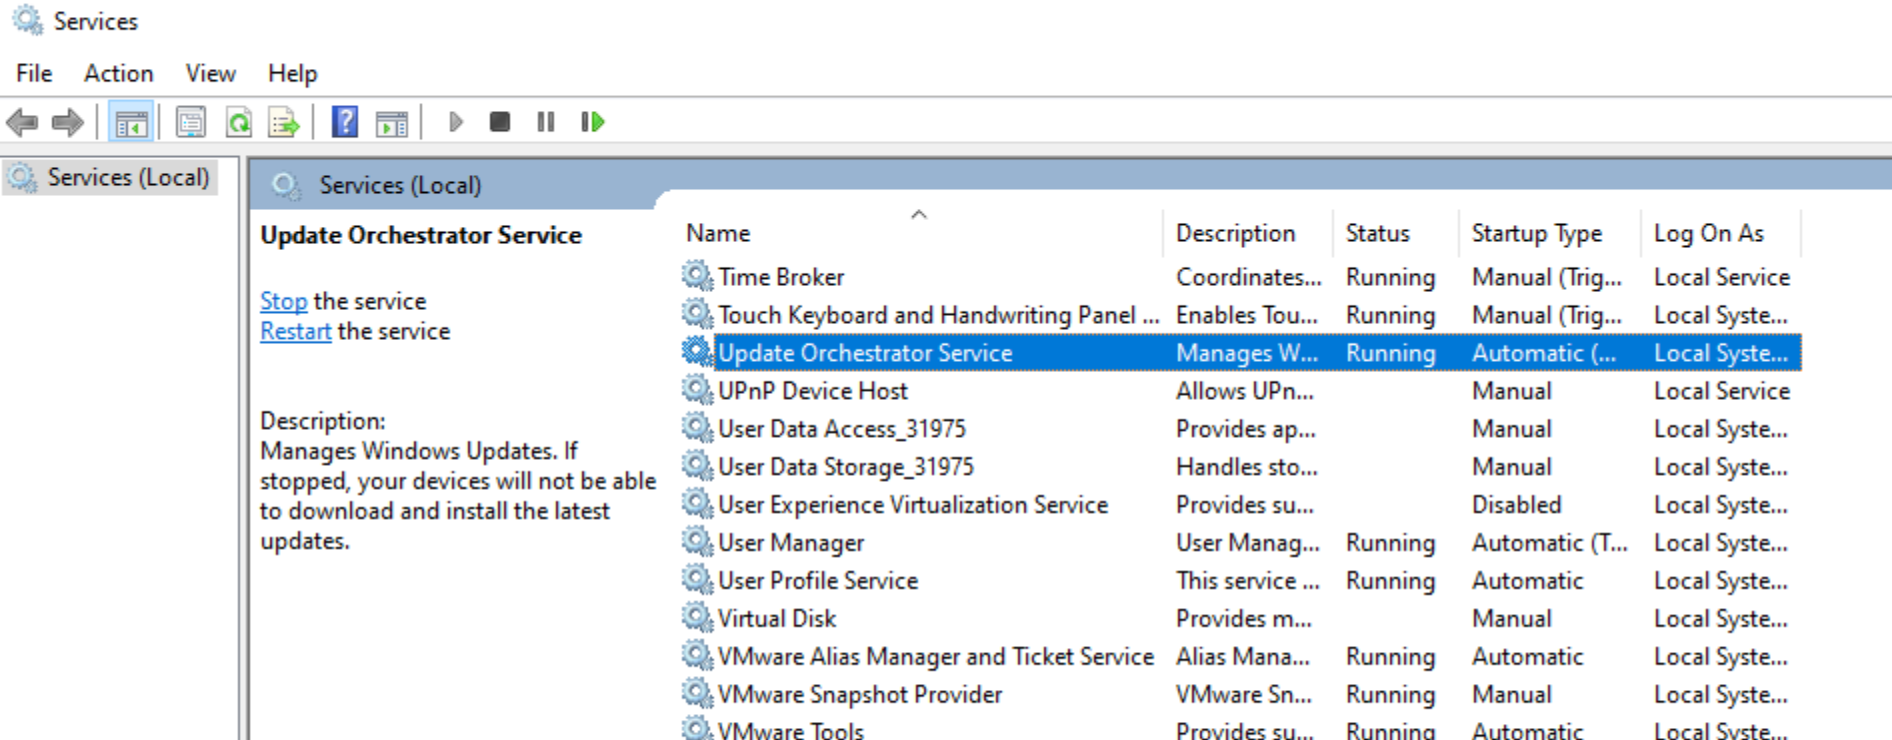 Scroll down to find the Update Orchestrator Service.